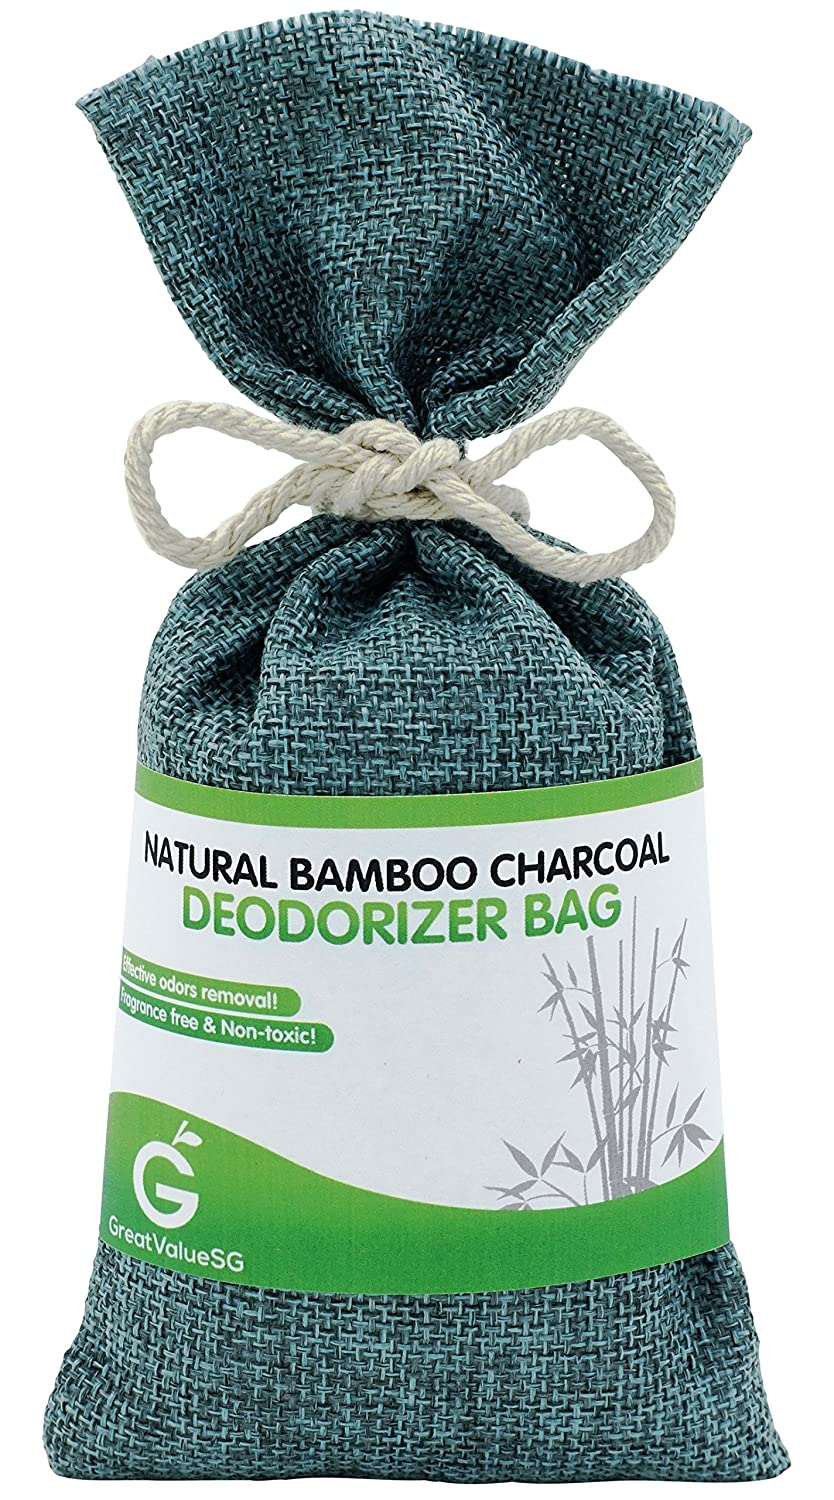 best air freshener for office. Amazon.com: BUY MORE SAVE Great Value SG Bamboo Charcoal Deodorizer Bag, Best Air Purifiers For Smokers \u0026 Allergies, Perfect Car Fresheners, Freshener Office E